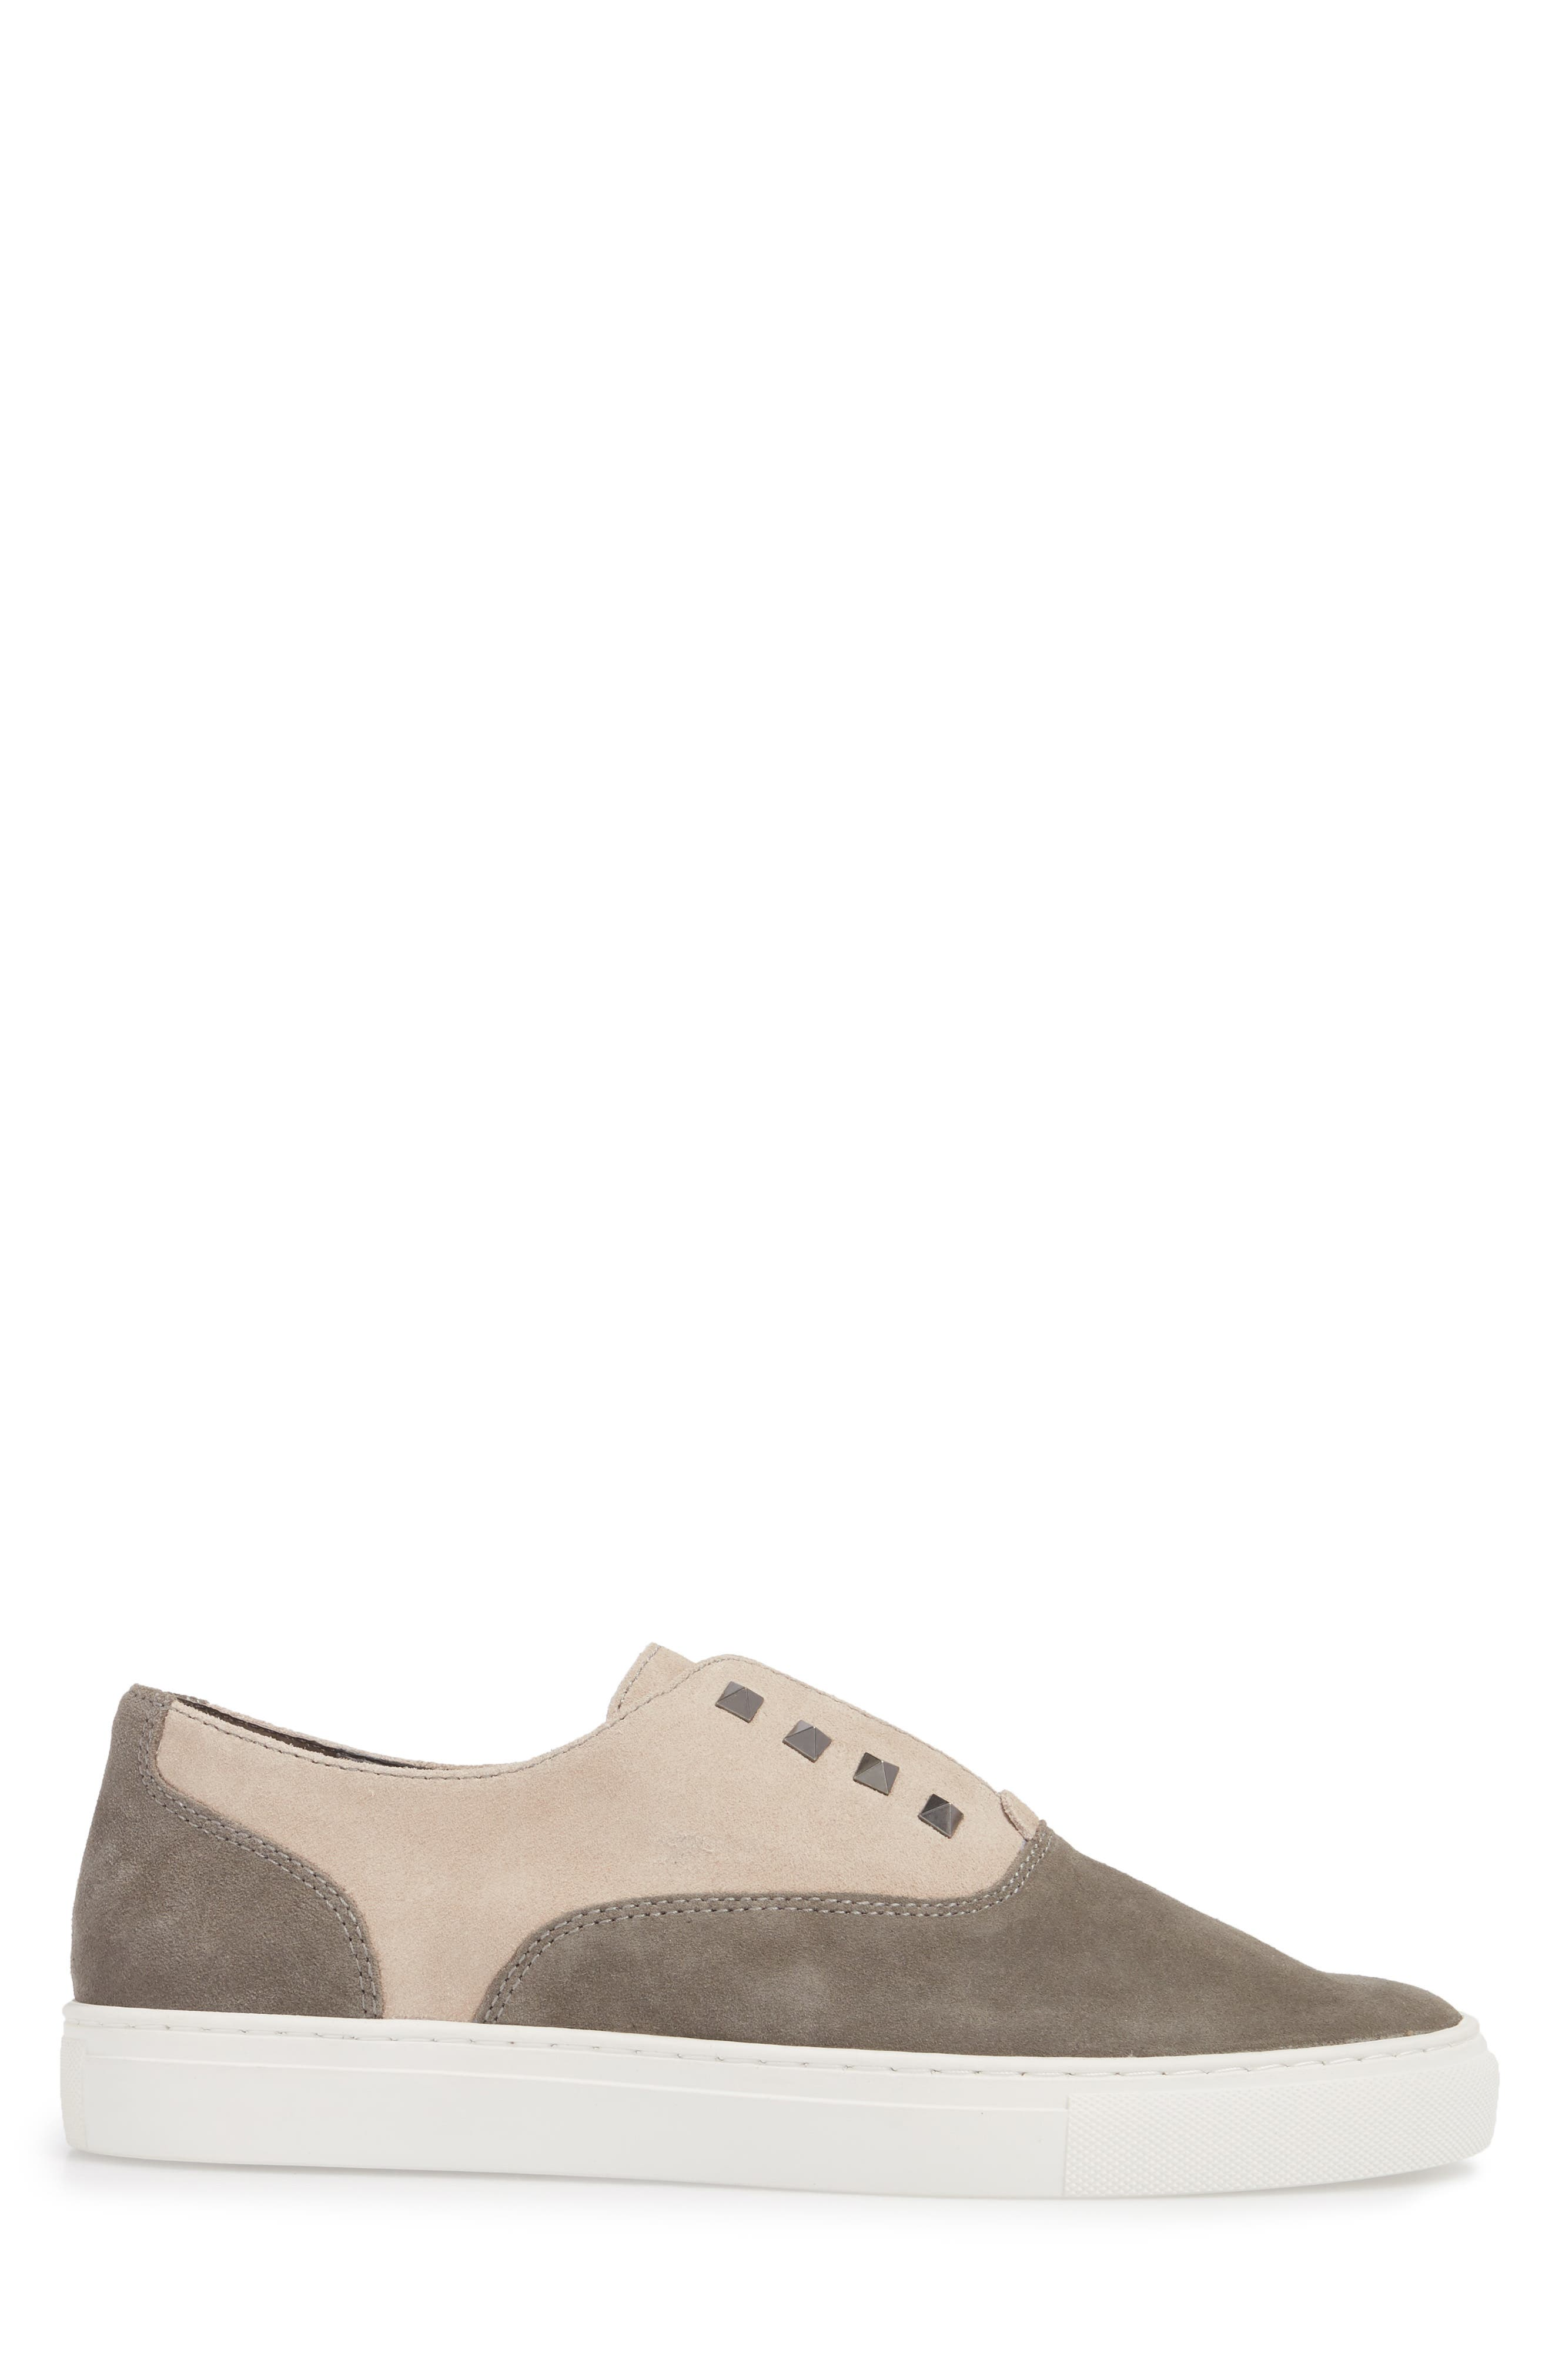 Aryo Studded Laceless Sneaker,                             Alternate thumbnail 3, color,                             Chocolate/ Sand Suede